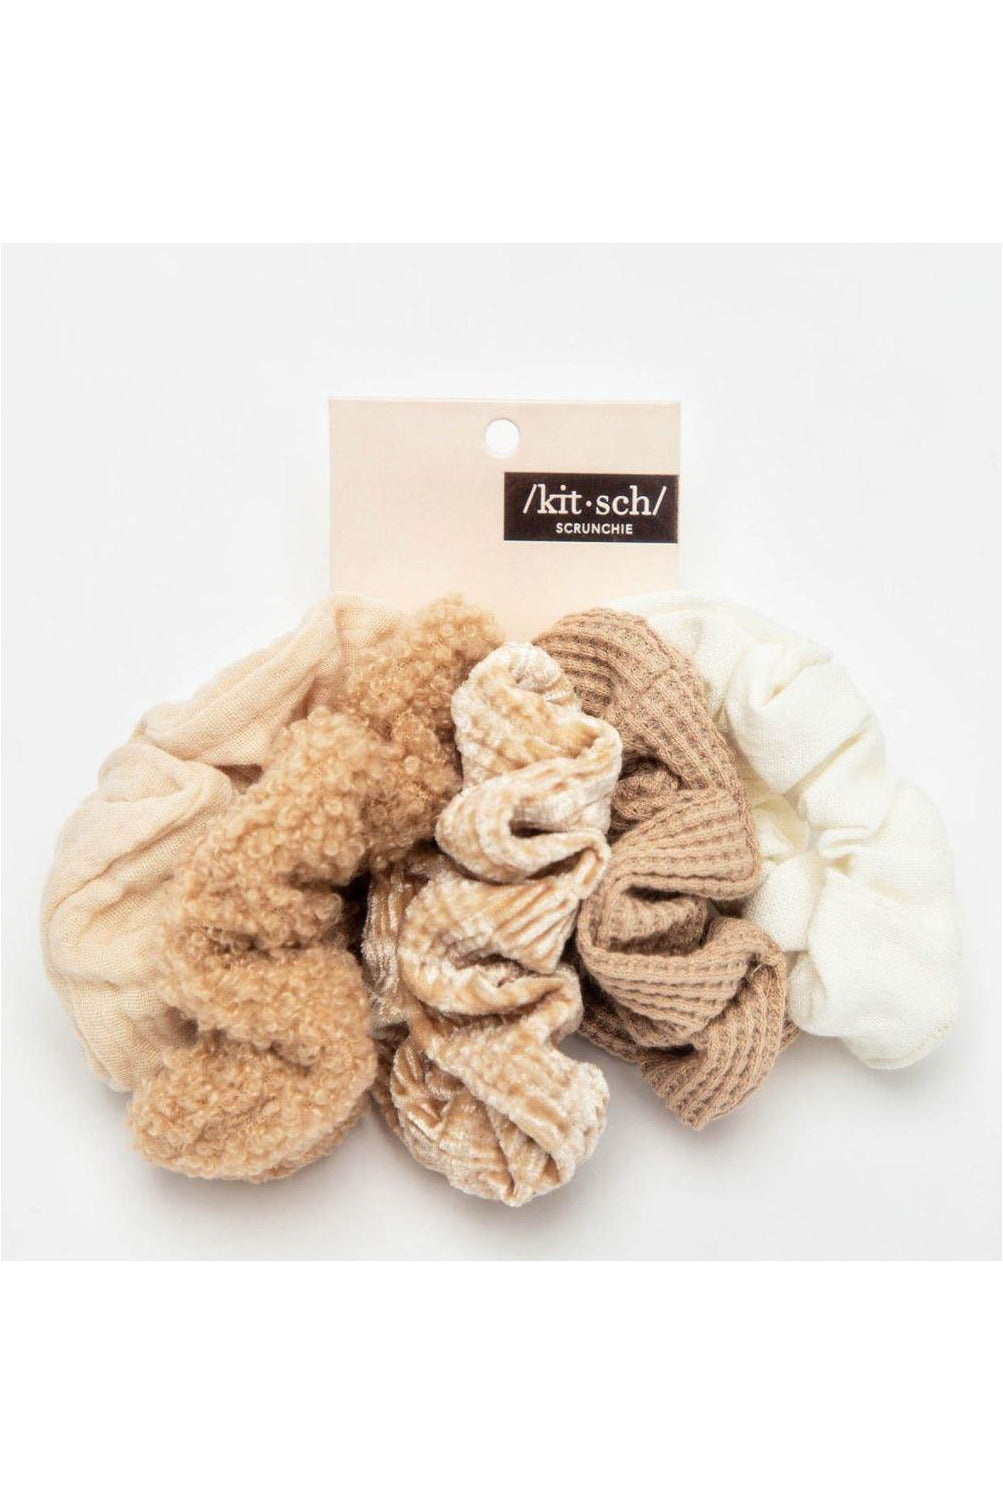 Kitsch Assorted Textured Scrunchies - BluePeppermint Boutique